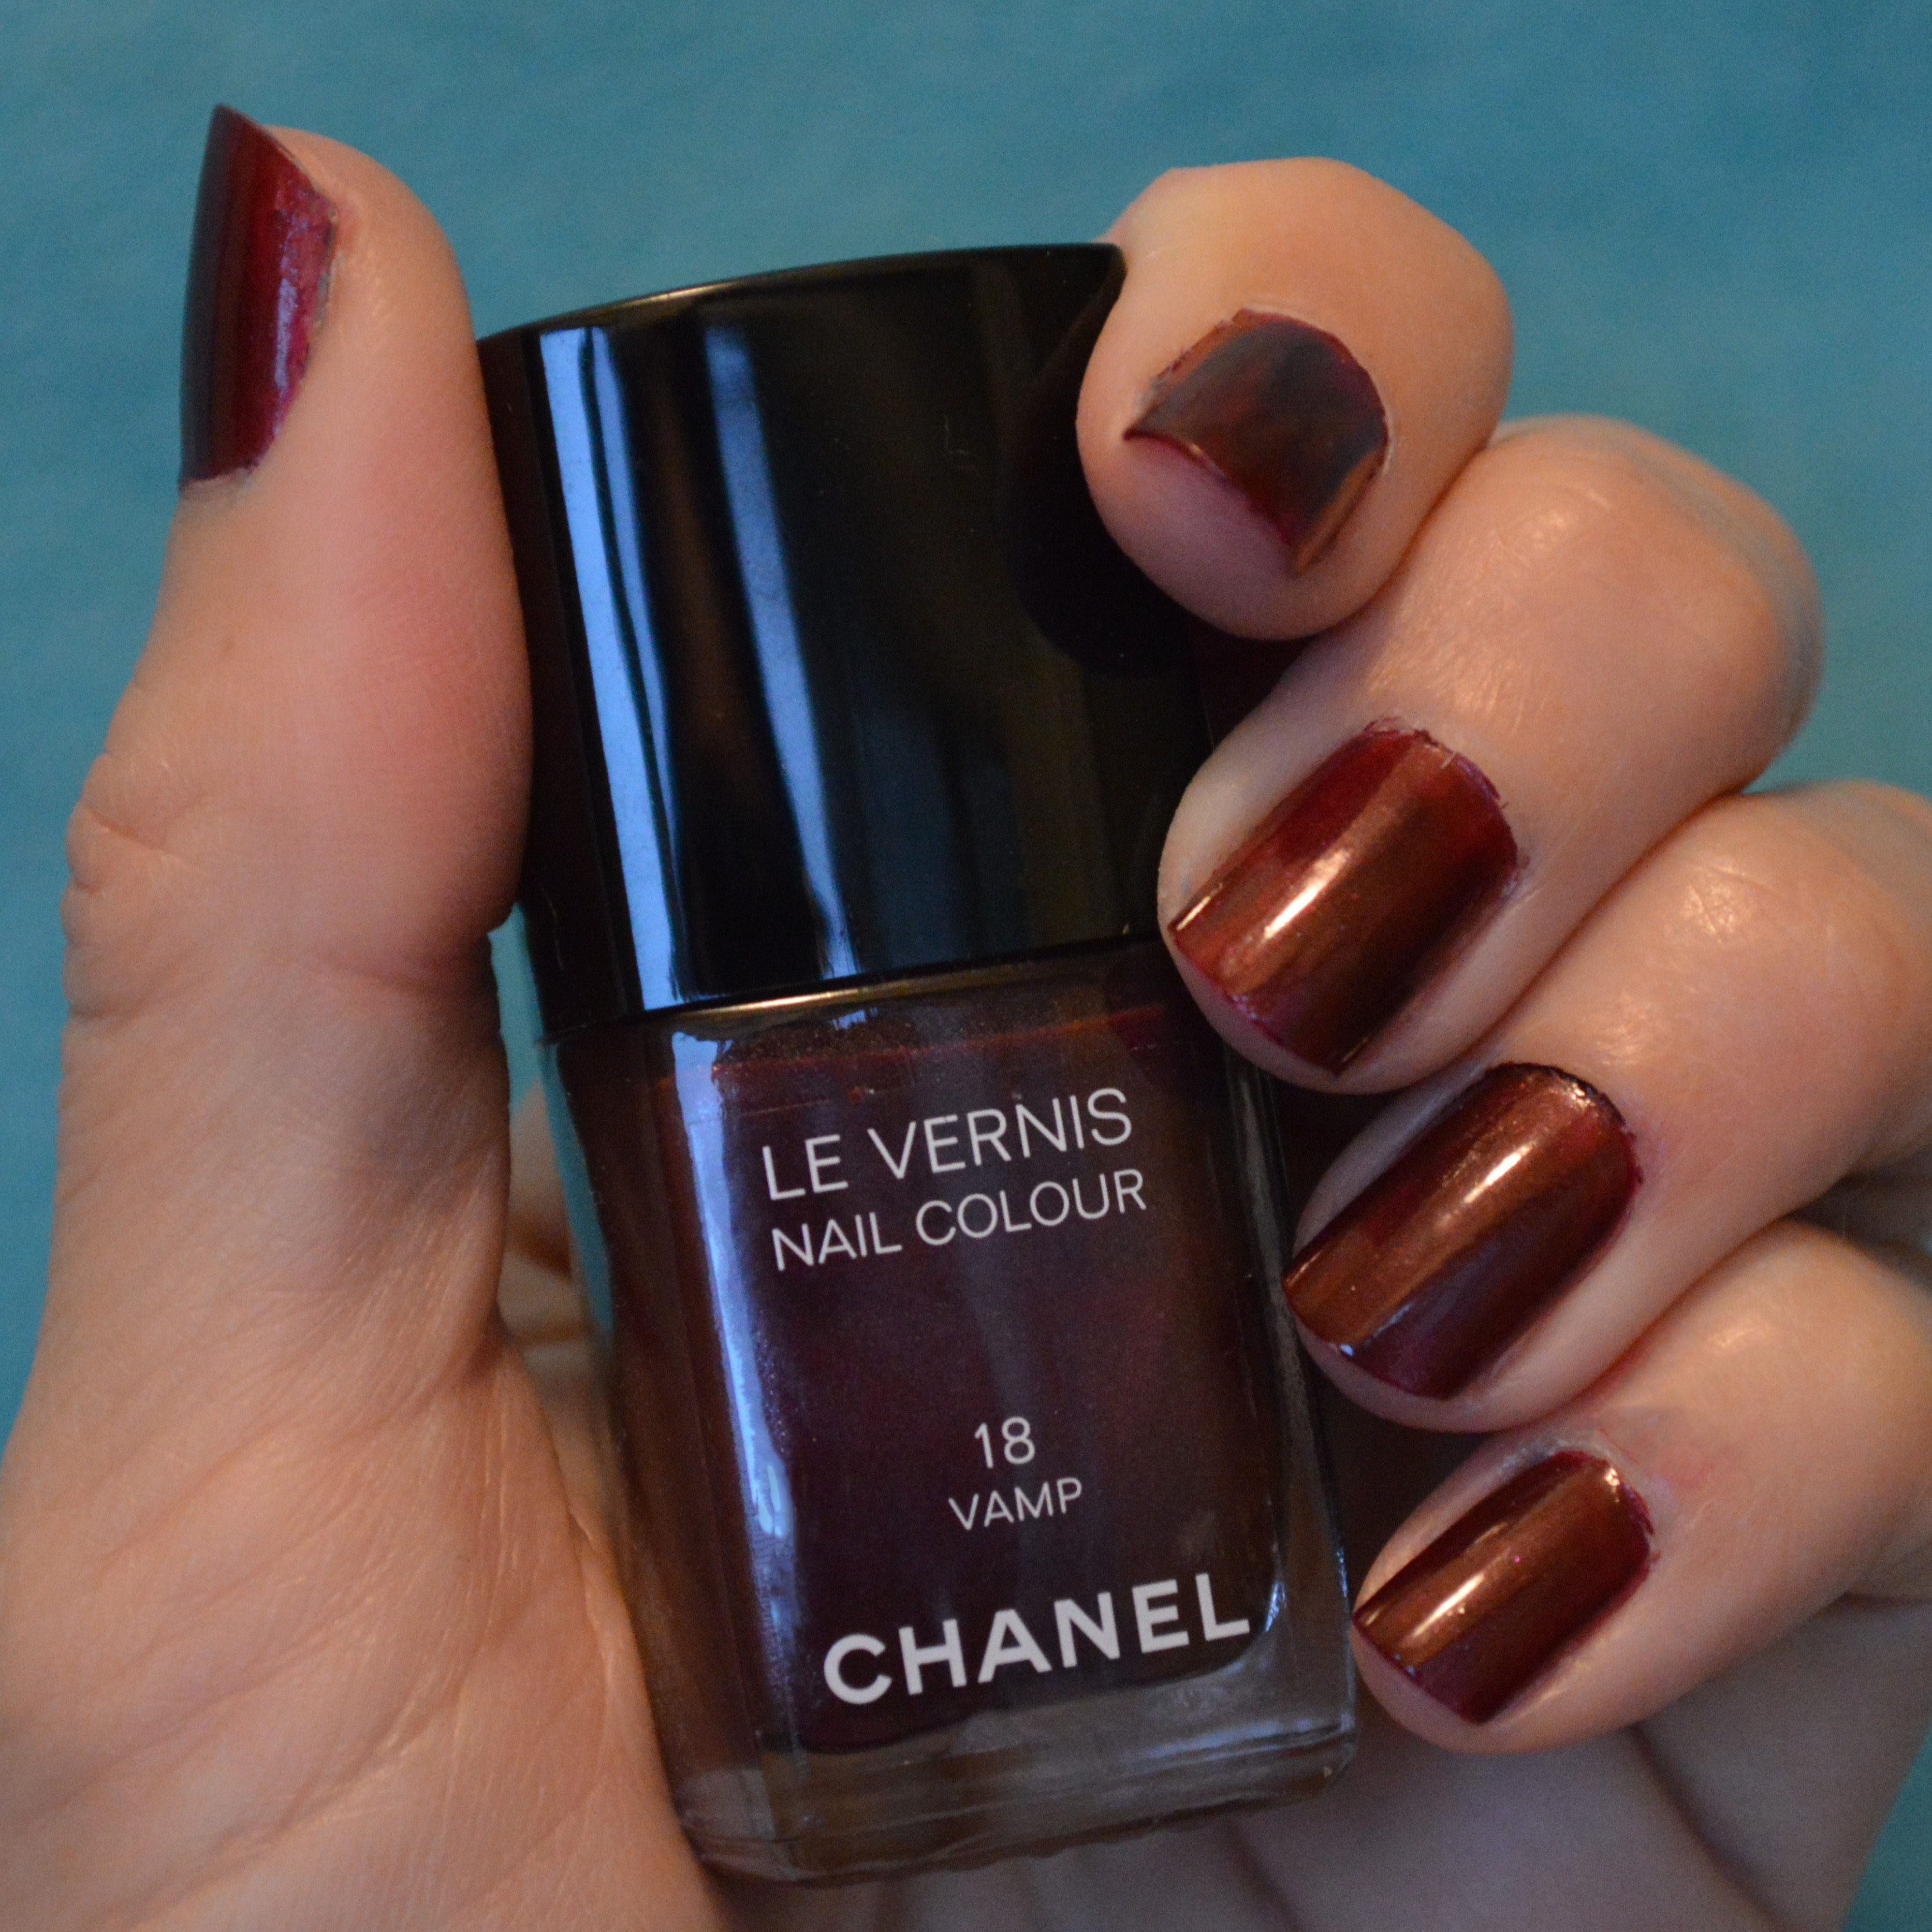 Chanel Vamp nail polish holidays 2014 review | Bay Area Fashionista